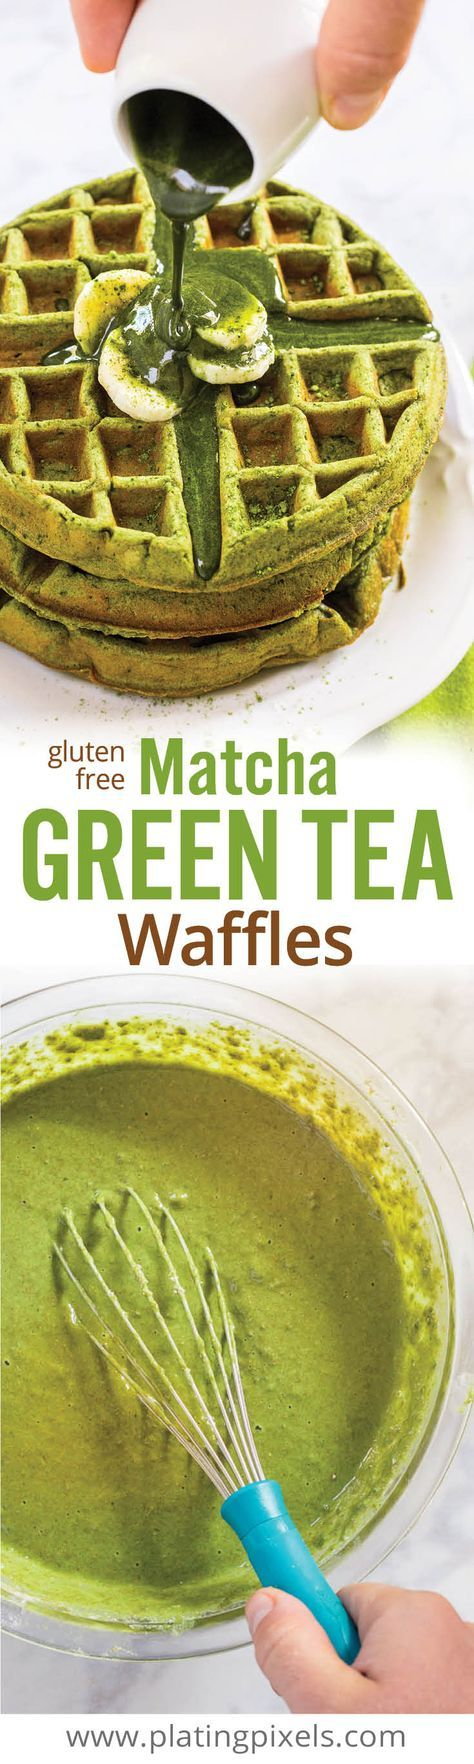 Protein rich, healthy matcha green tea waffles. Made with matcha green tea powder, oat flower, coconut milk, egg, olive oil, honey and banana. Gluten free and clean eating. www.platingpixels.com